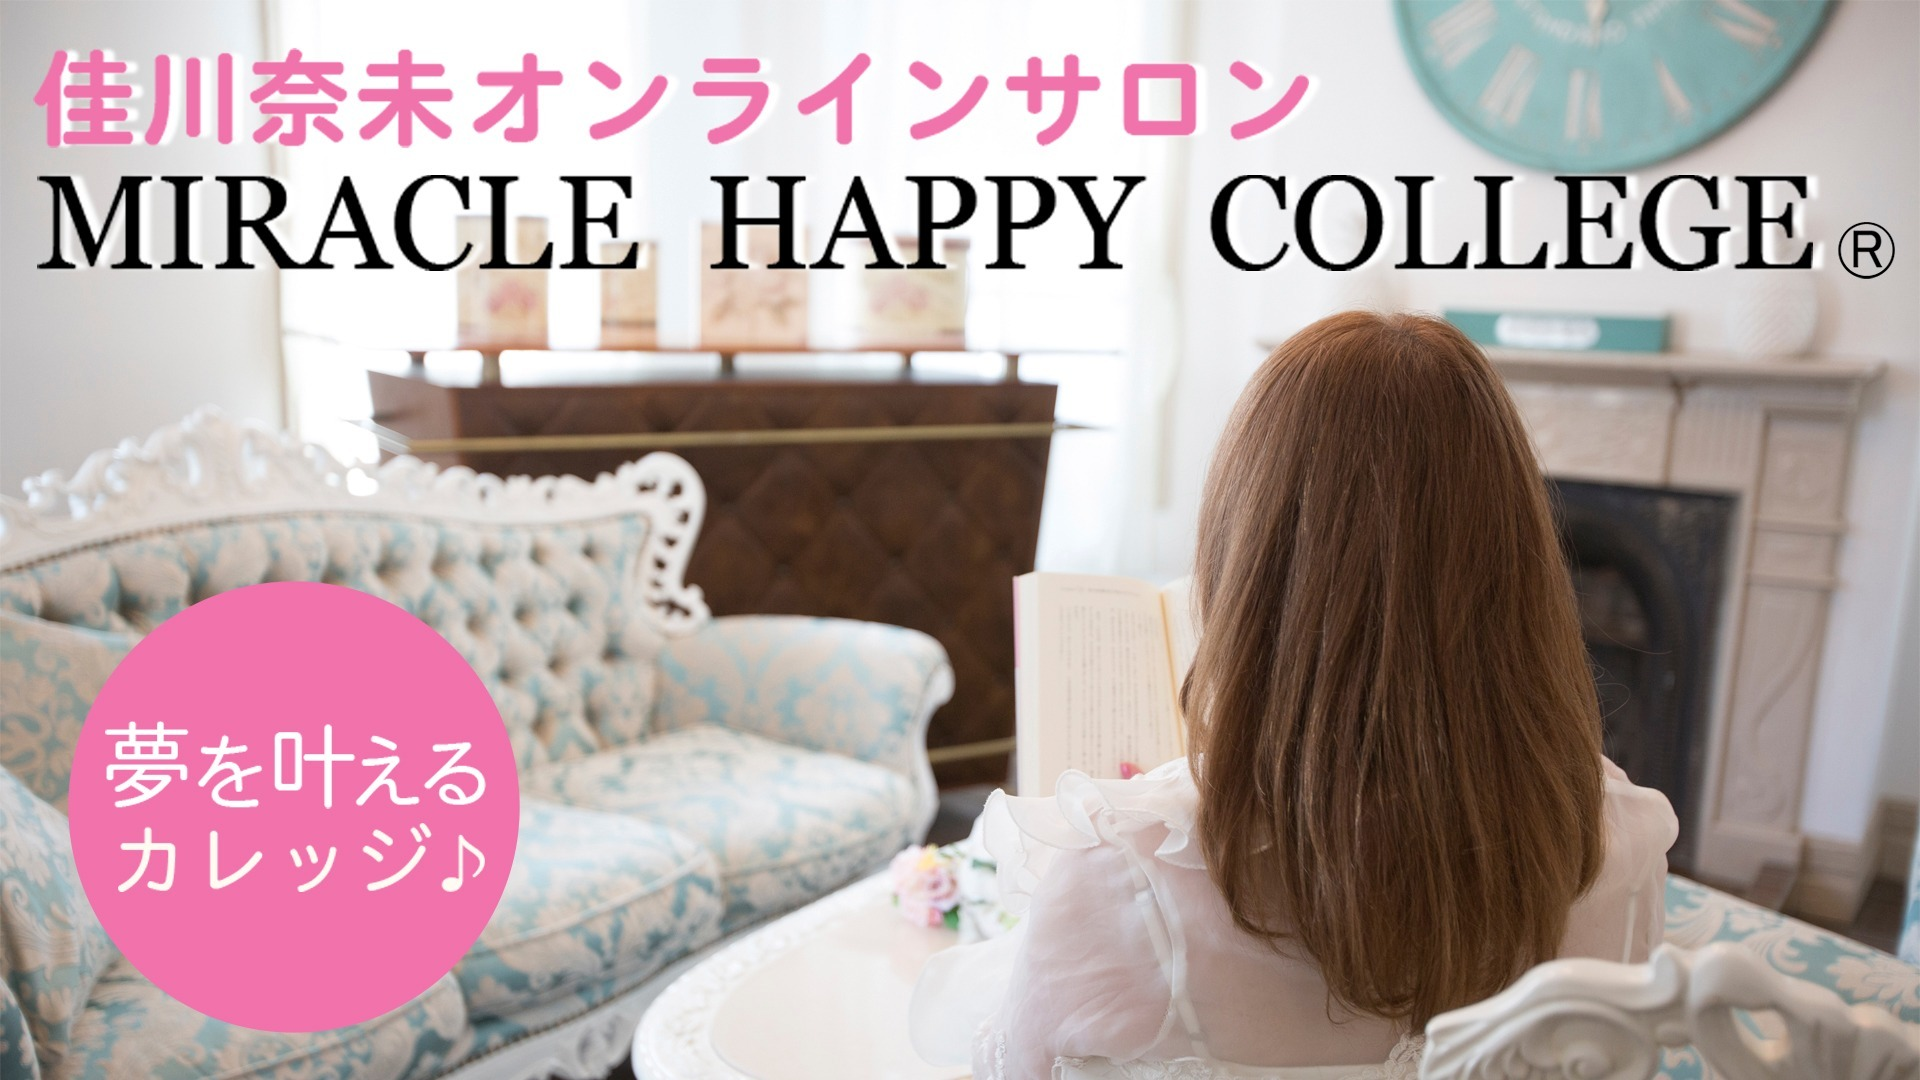 MIRACLE HAPPY COLLEGE・夢を叶える大人のカレッジ